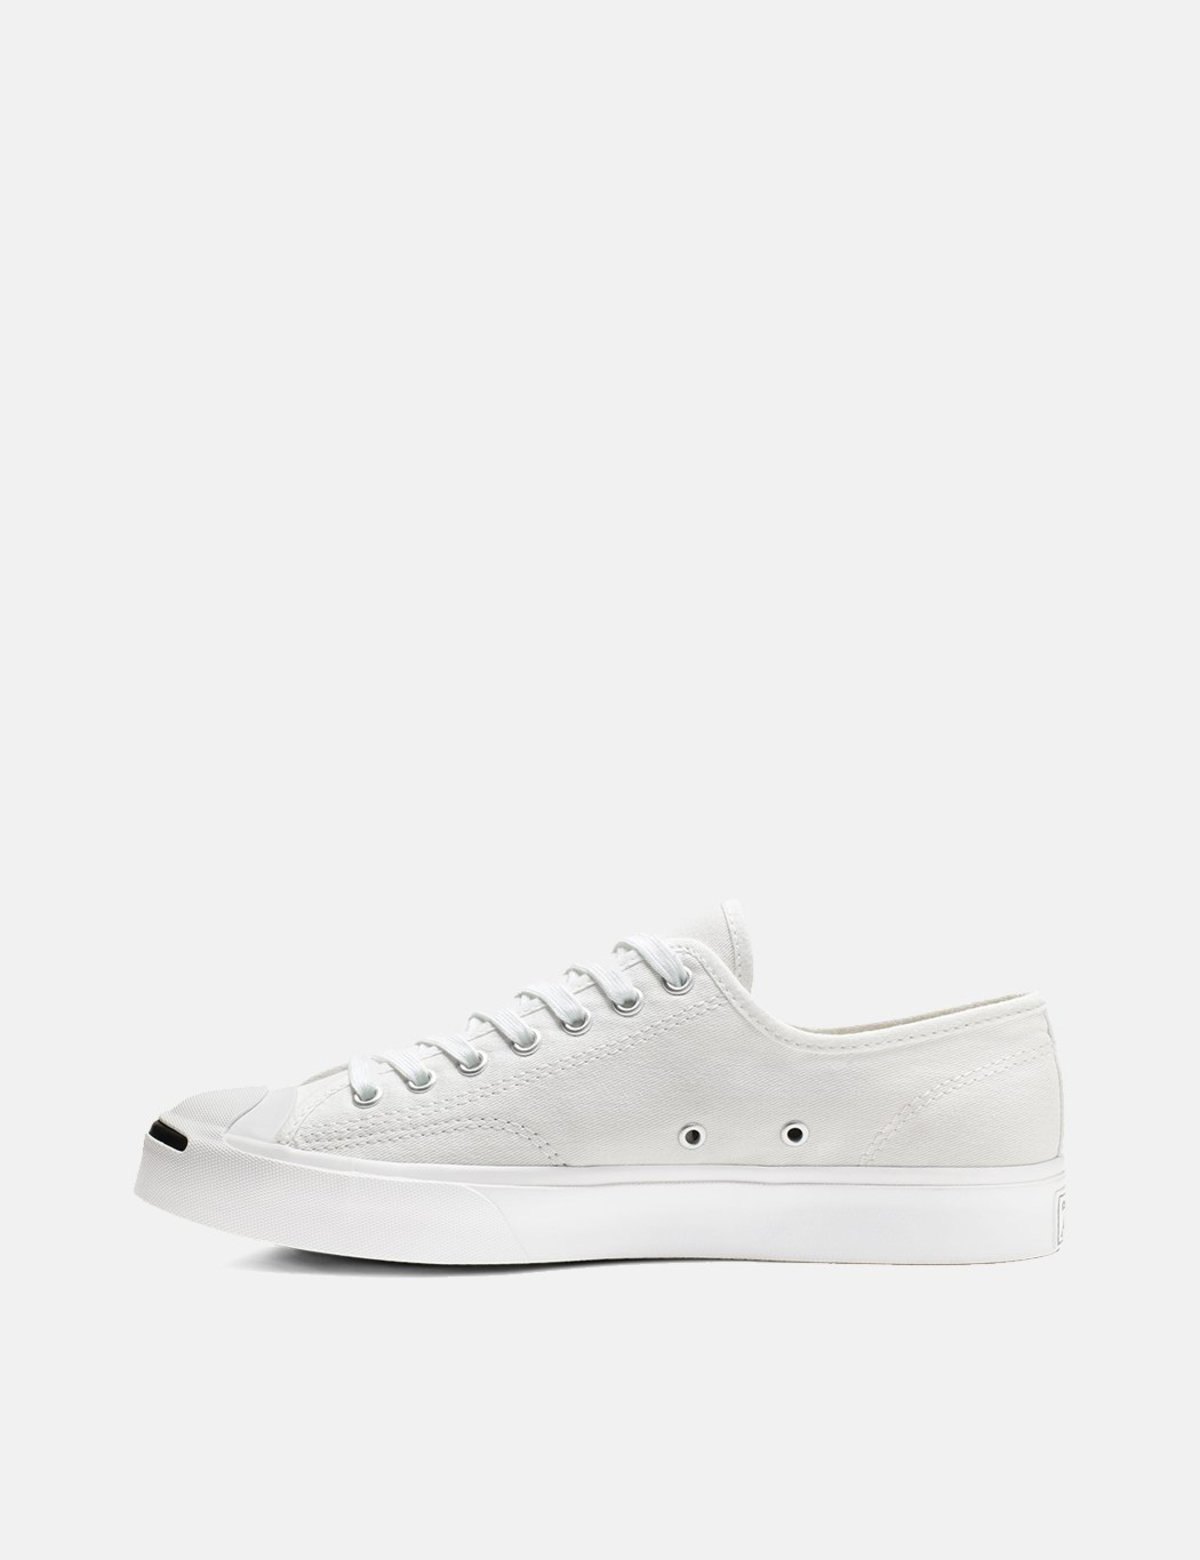 Converse Jack Purcell 164057C (Canvas) WhiteWhite